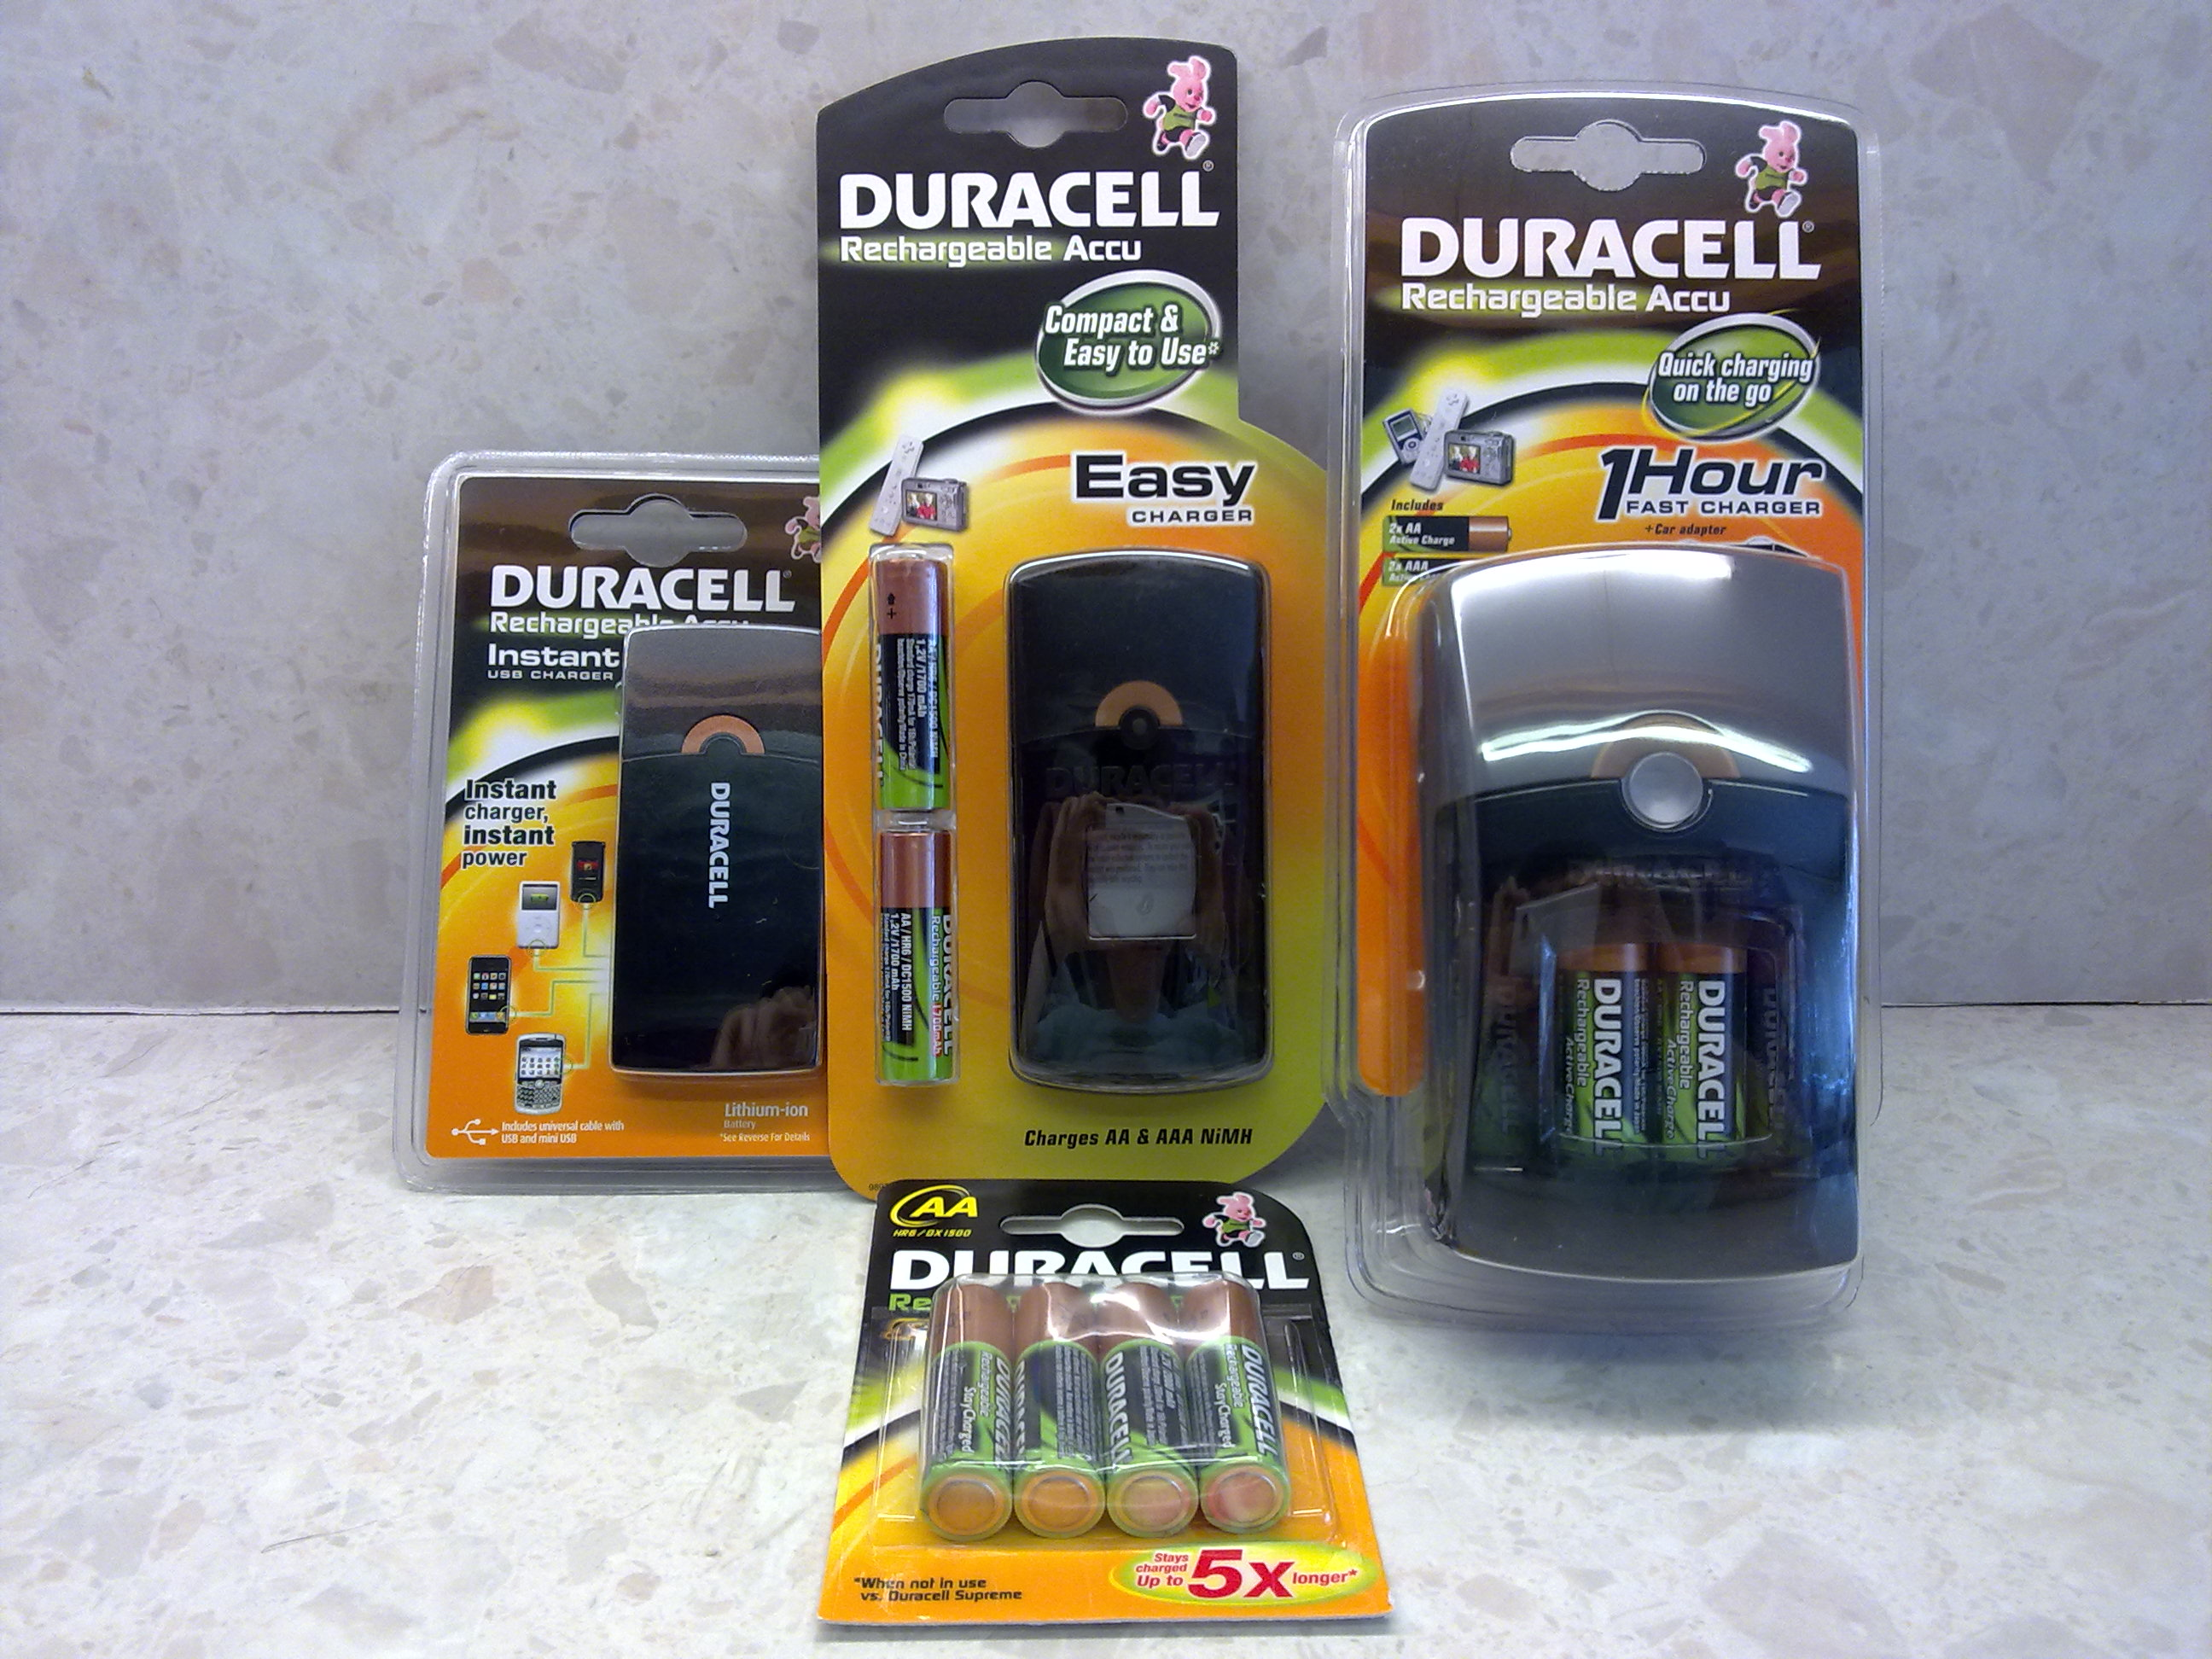 Accu Rechargeable Duracell Batteries Rechargeable Accu Range Review Tech Digest